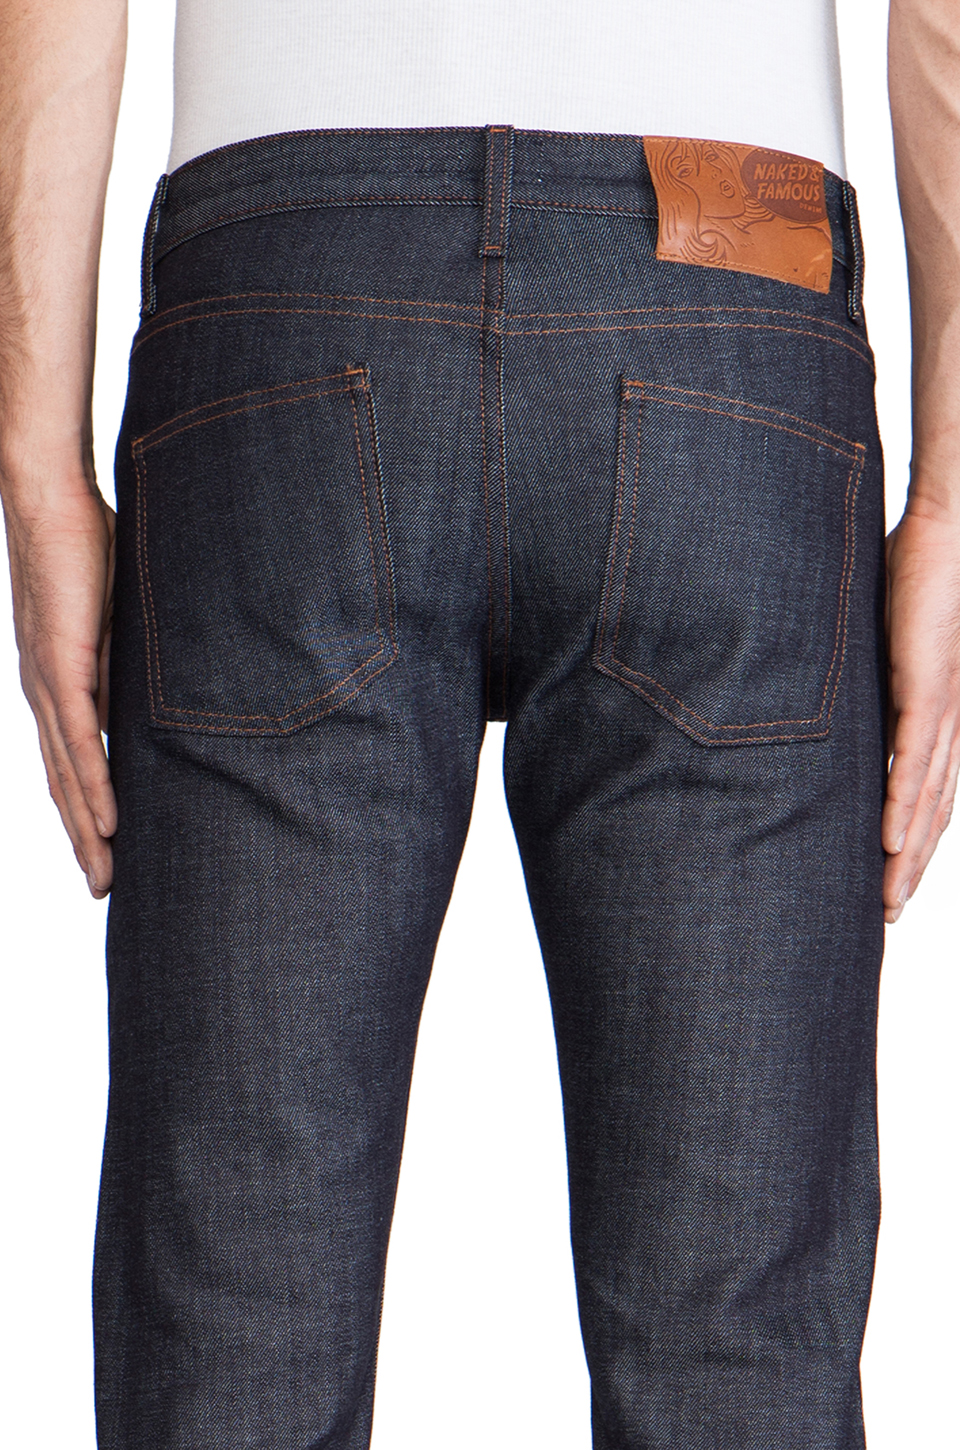 Naked & Famous Denim Super Skinny Guy 12.5 oz in Stretch Selvedge